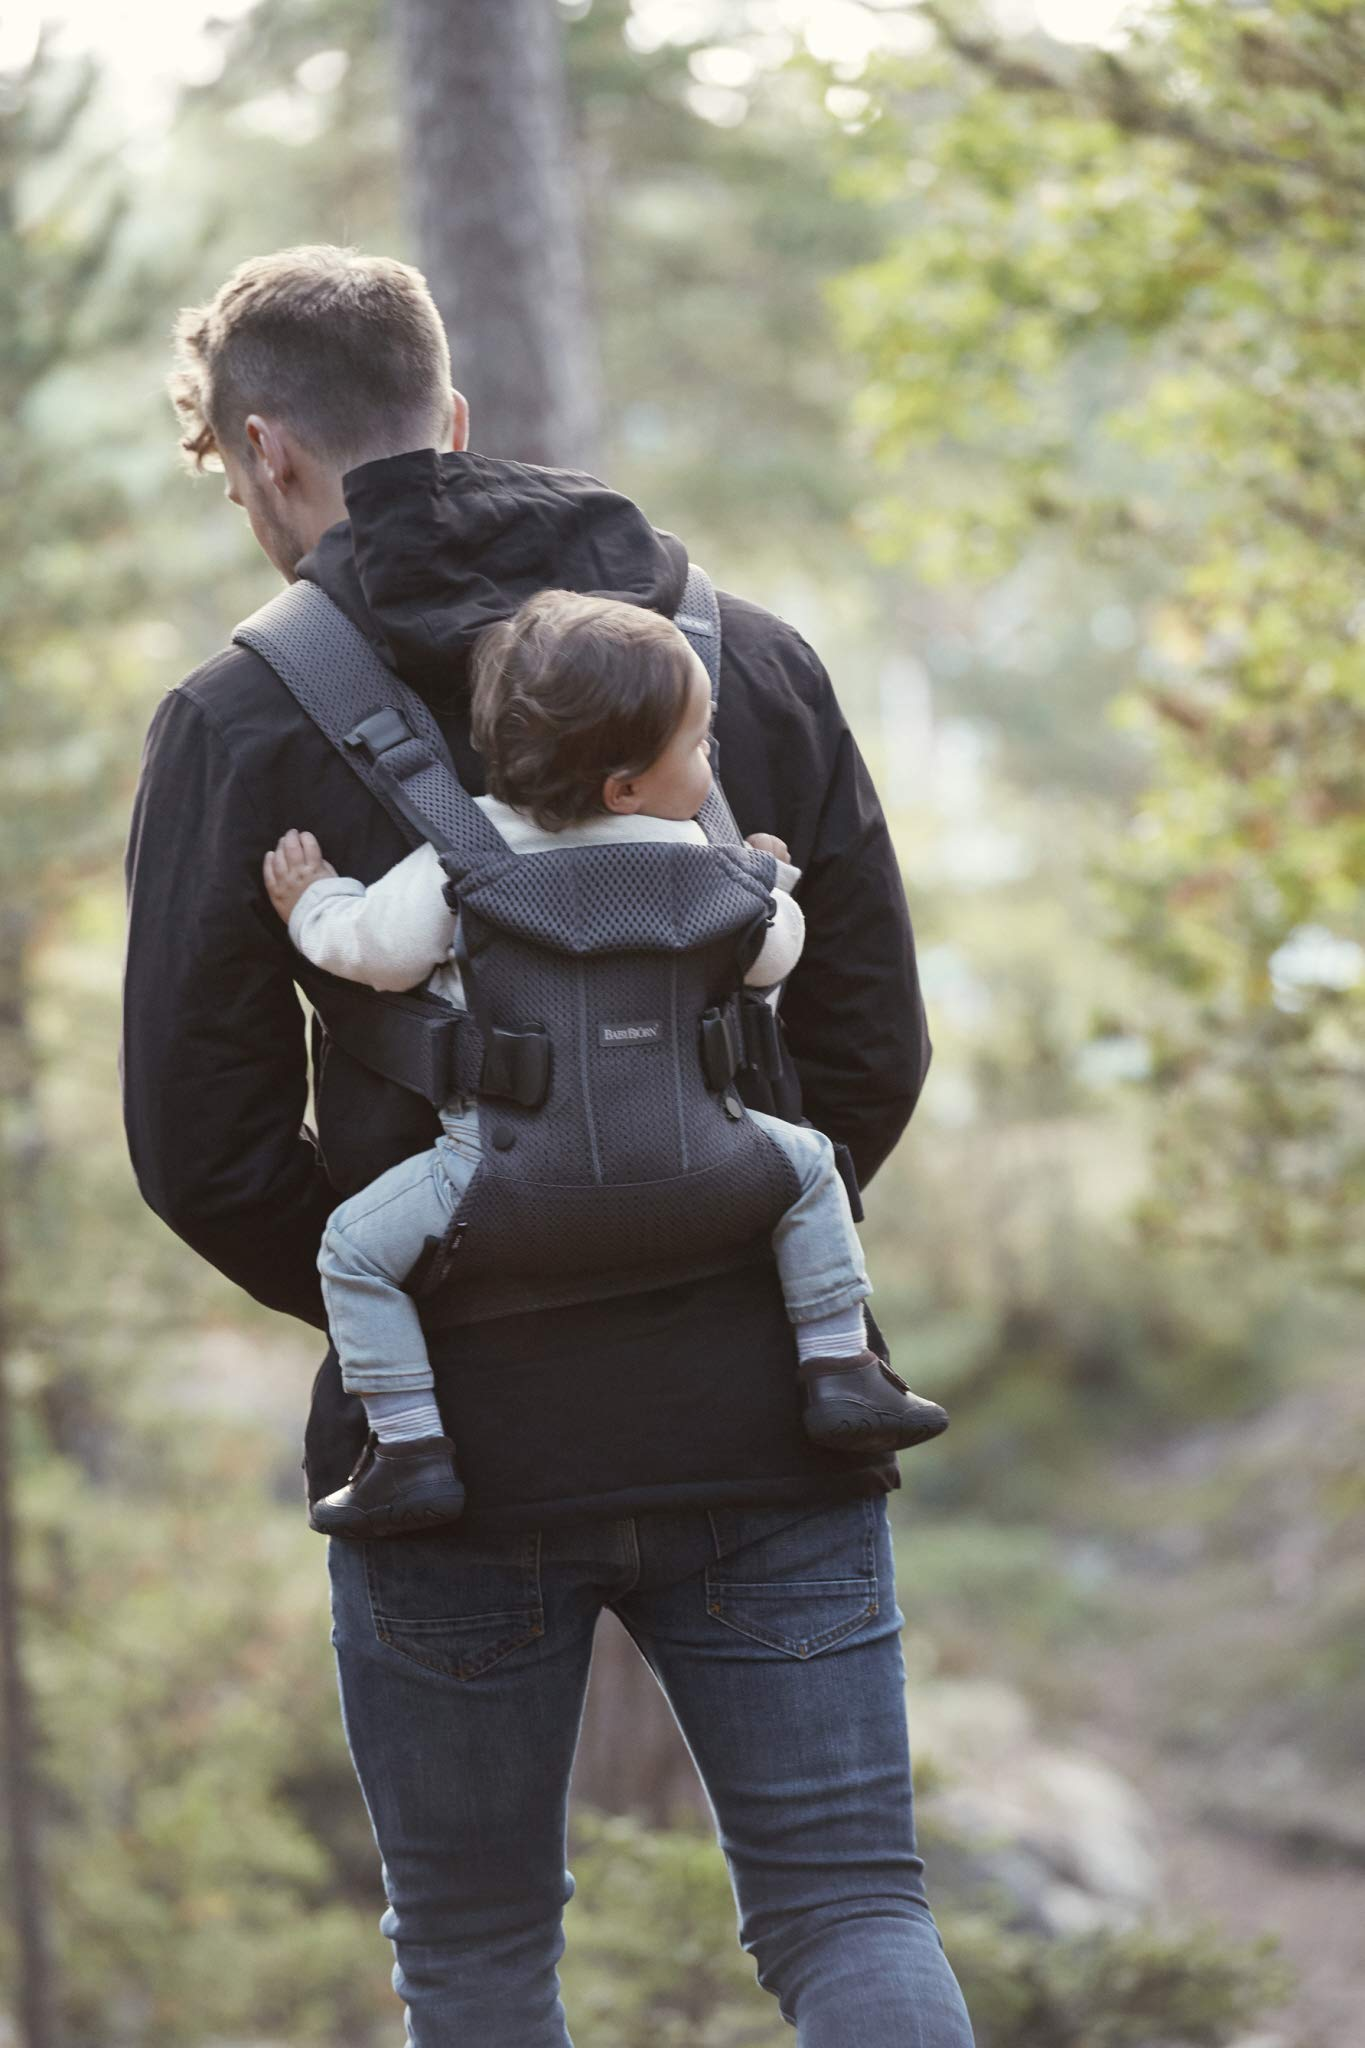 BABYBJÖRN Baby Carrier One Air, 3D Mesh, Anthracite, 2018 Edition Baby Bjorn The latest version (2018) with soft and breathable mesh that dries quickly Ergonomic baby carrier with excellent support 4 carrying positions: facing in (two height positions), facing out or on your back 6